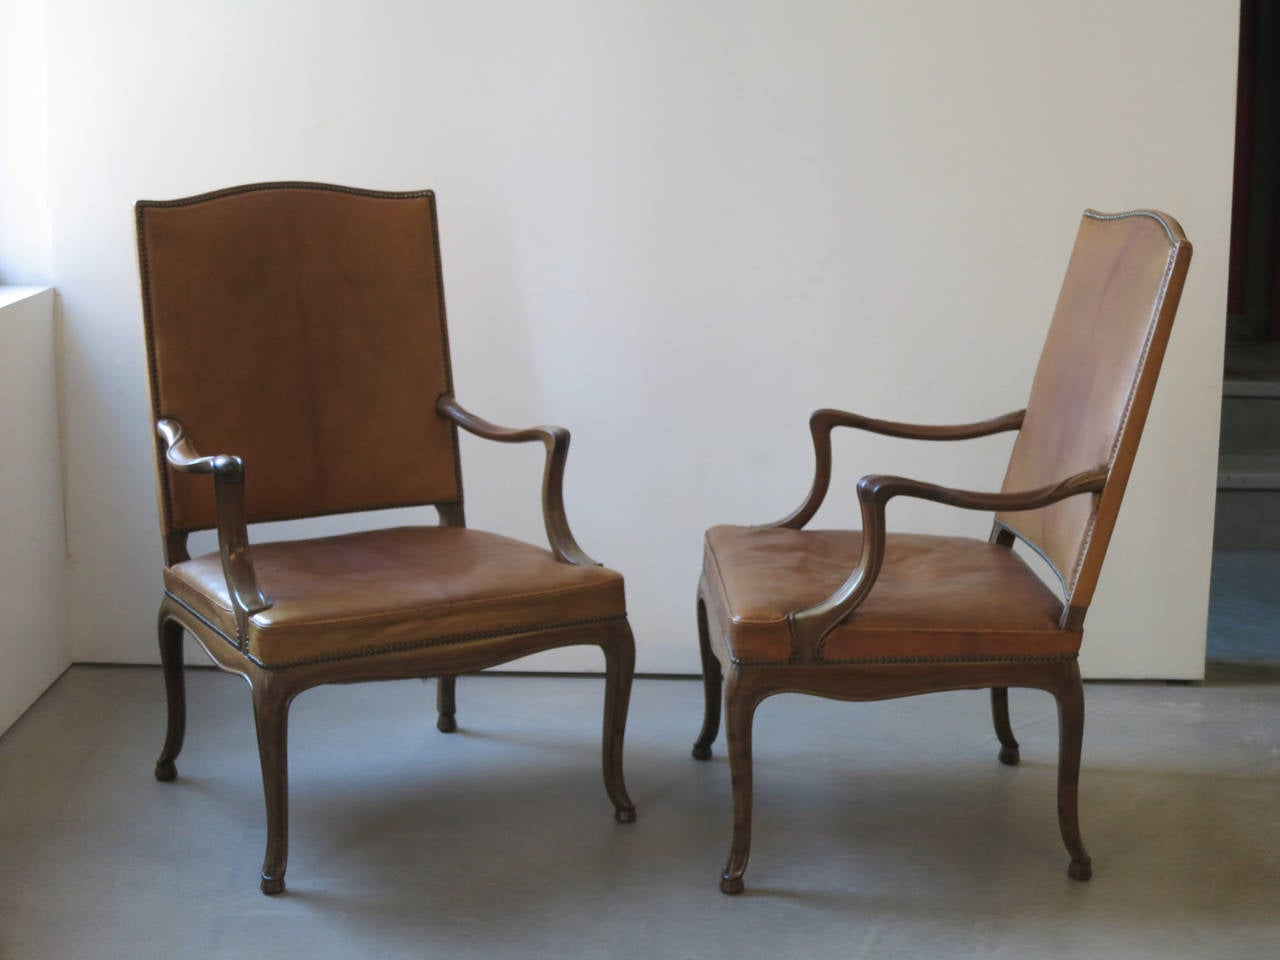 Frits Henningsen Four Large 1930s Armchairs in Danish Rococo Style 2